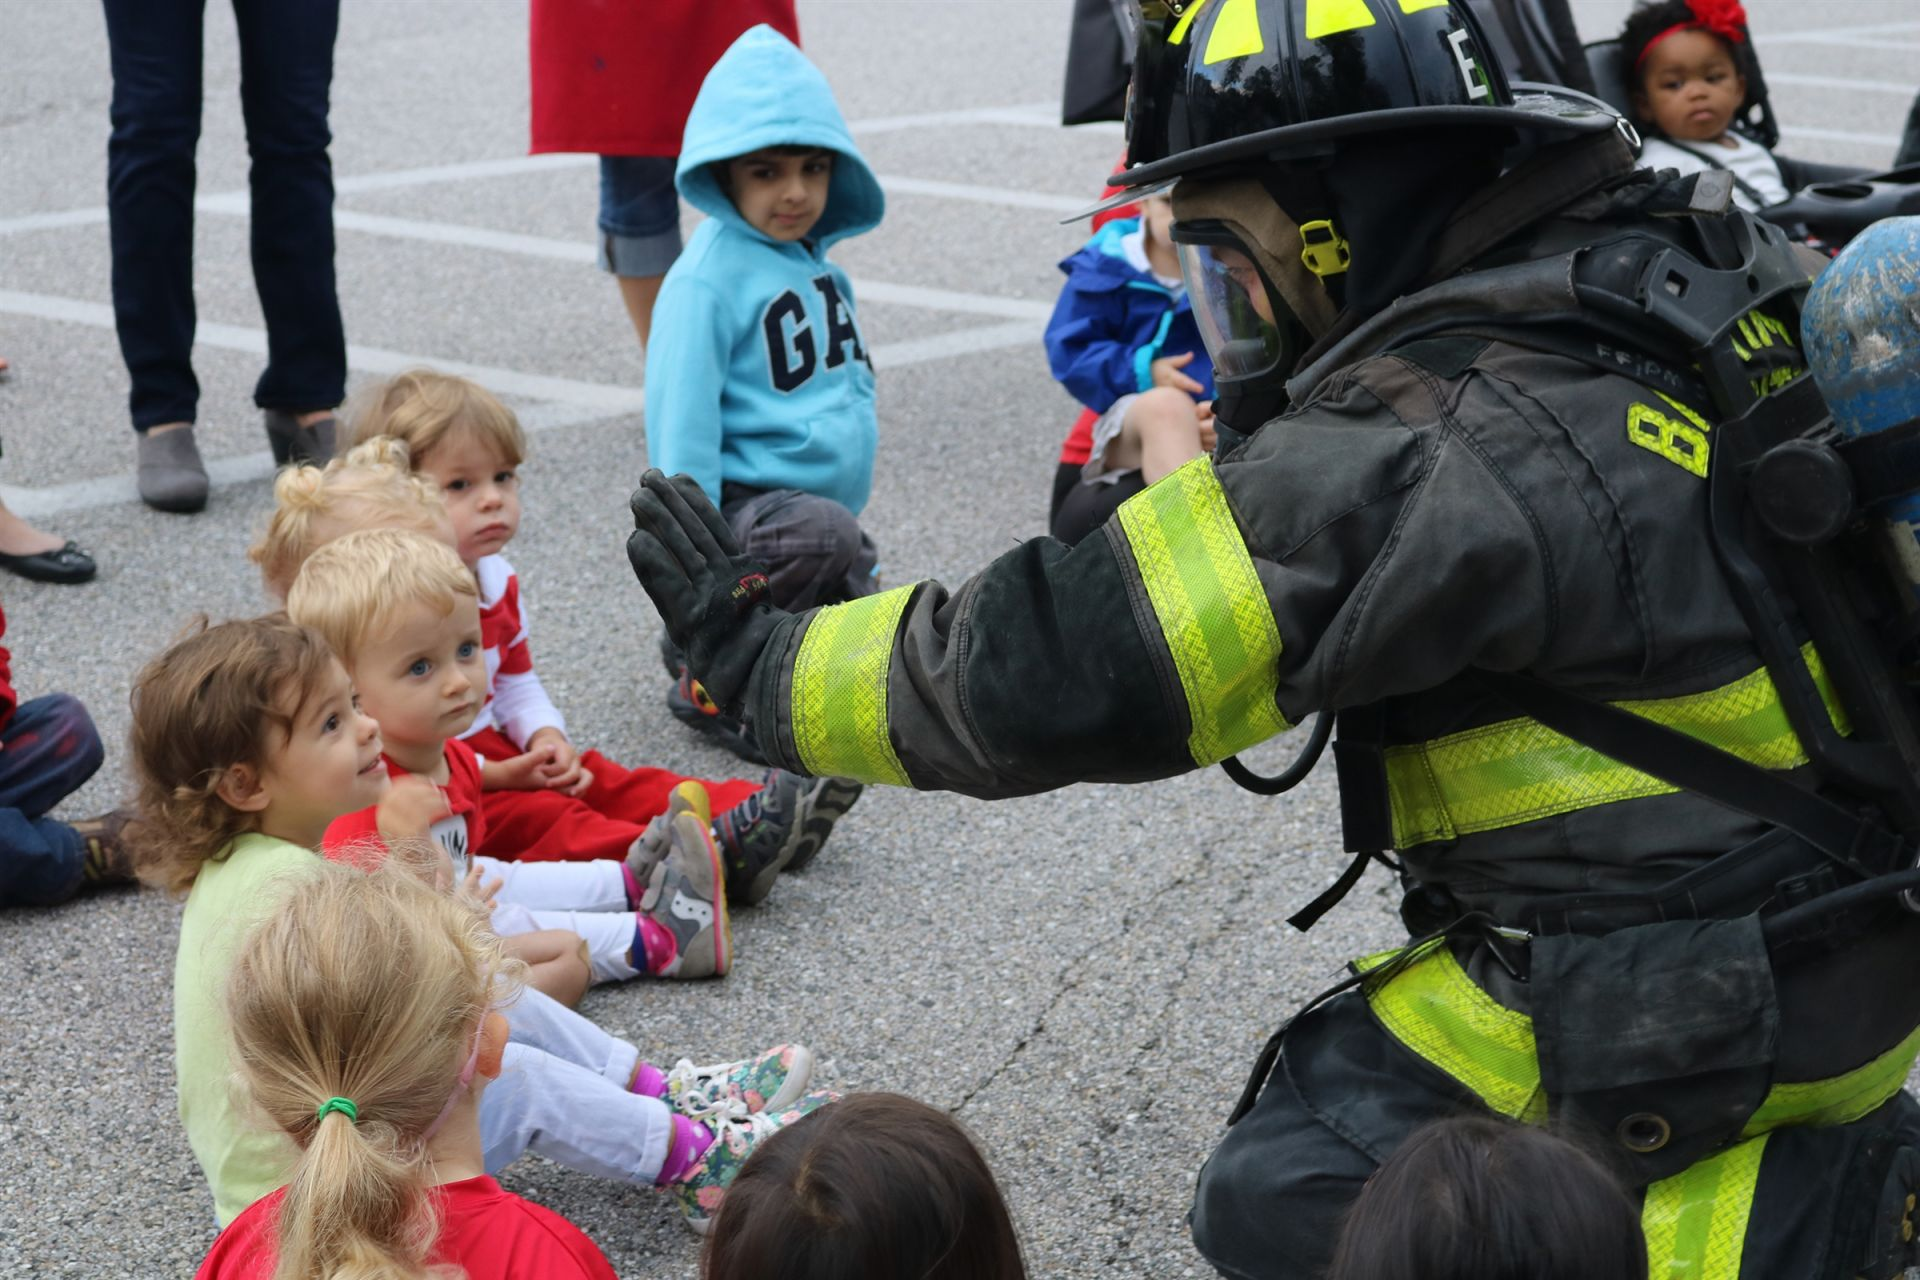 Our RPCS Preschool students recently got a special visit from the local firefighters of the Baltimore City Fourth Battalion. Truck Company 25 came to campus to remind students of the importance of fire safety. The children got to see the fire truck equipment and aerial ladder, and even got to wear a fireman's helmet!